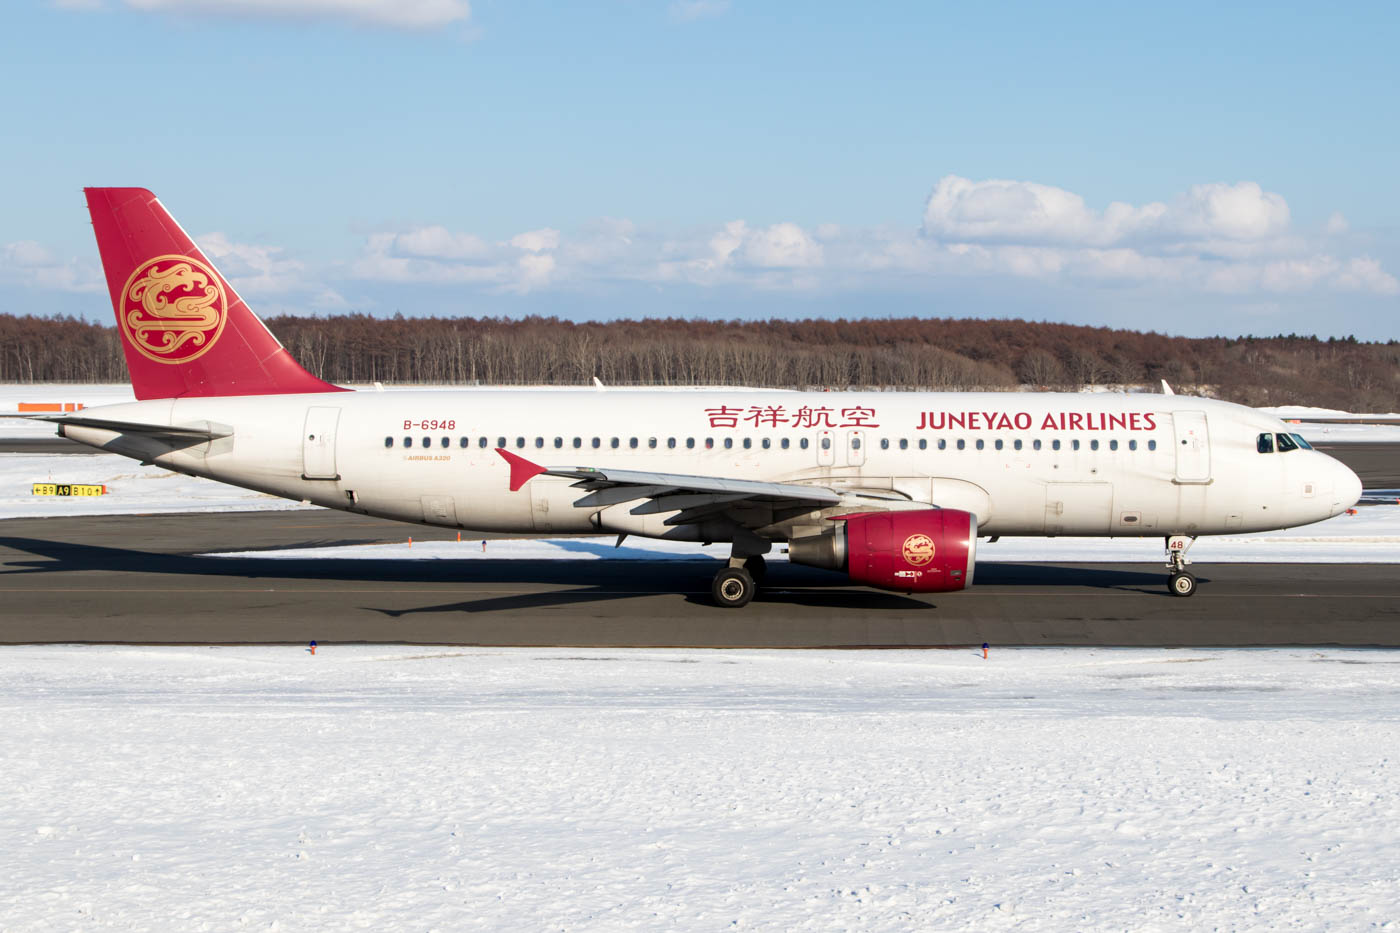 Juneyao Airlines A320